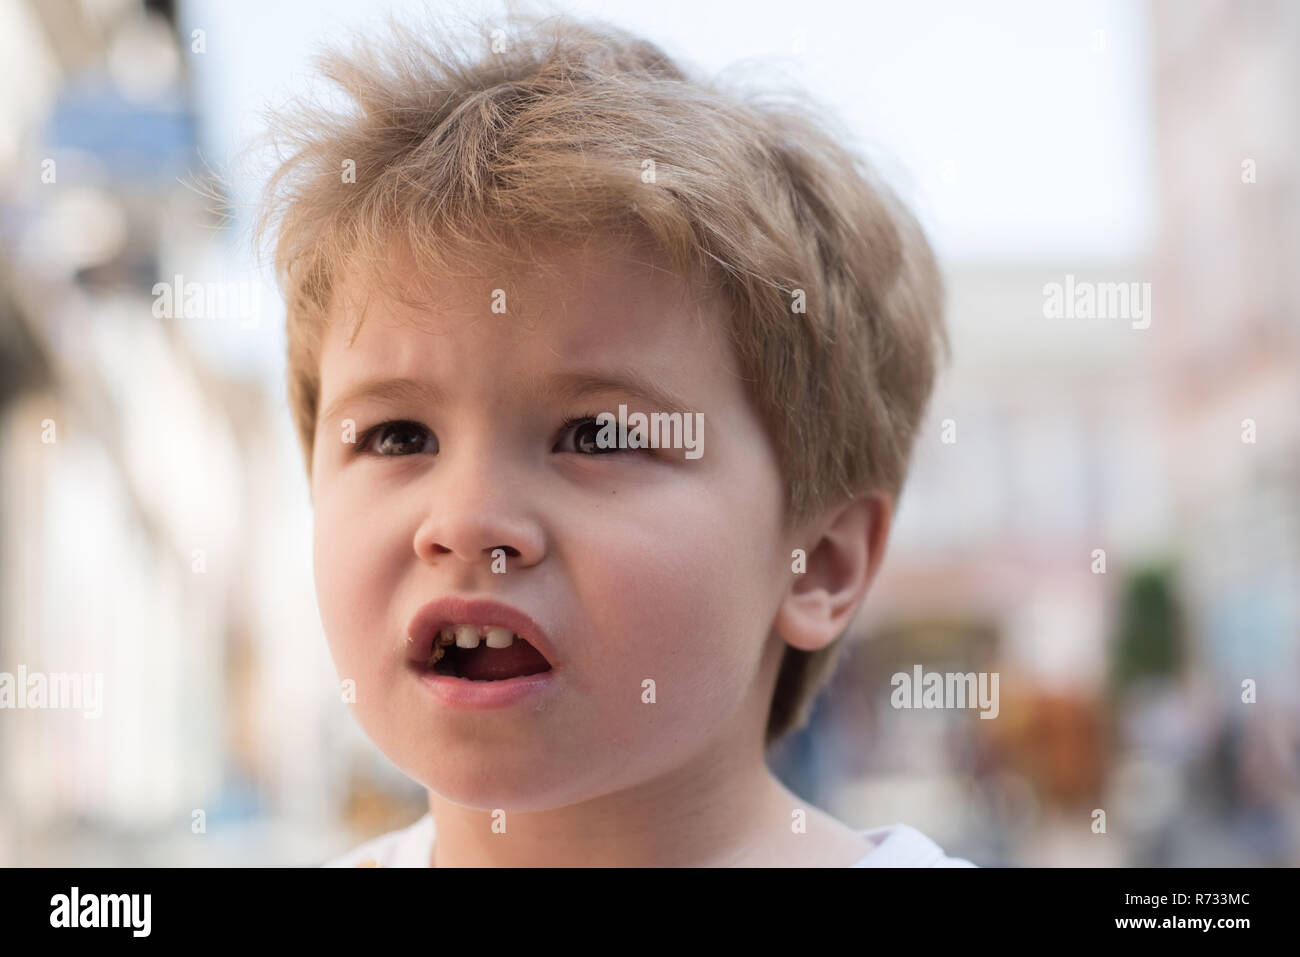 Trendiest haircut. Little child eating outdoor. Small boy with stylish haircut. Little child with short blond hair. Healthy hair care habits. Its always important to me to take good care of my hair Stock Photo